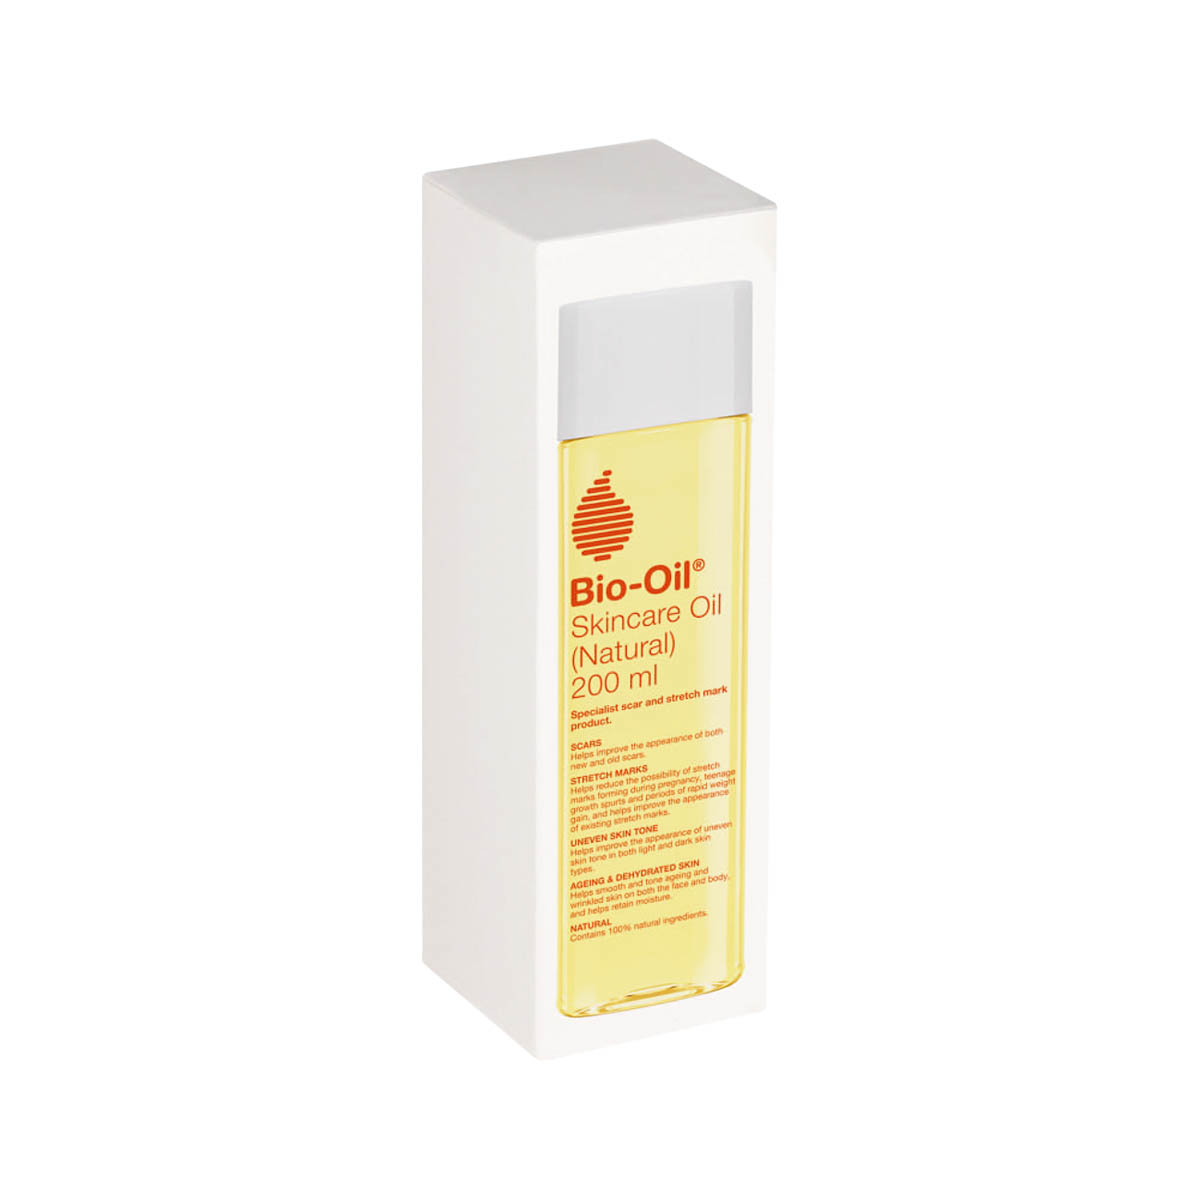 BIO Oil Natural Skincare Oil 200ml